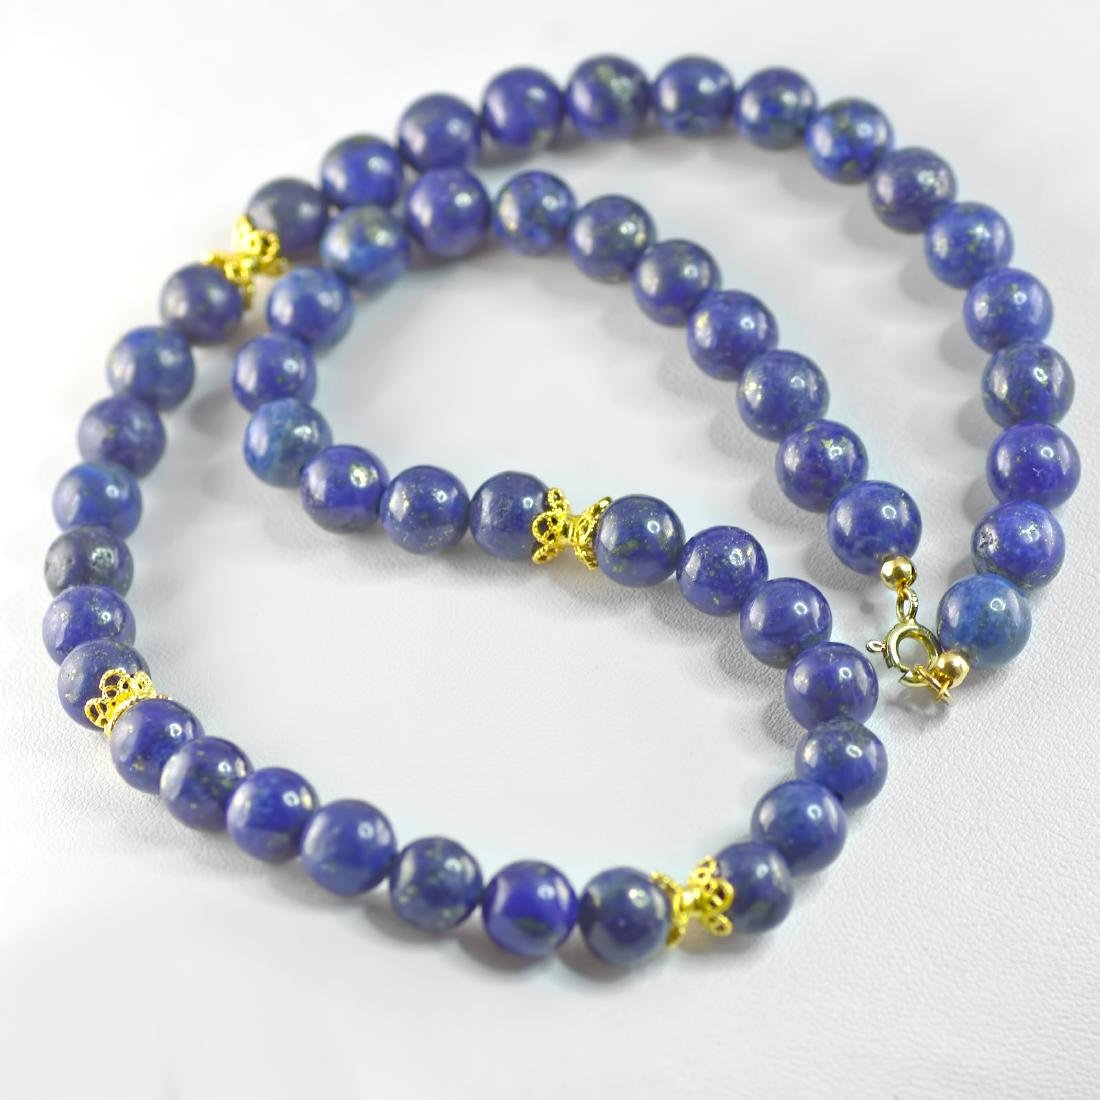 Lapis lazuli Necklace with Golden Accents - 2